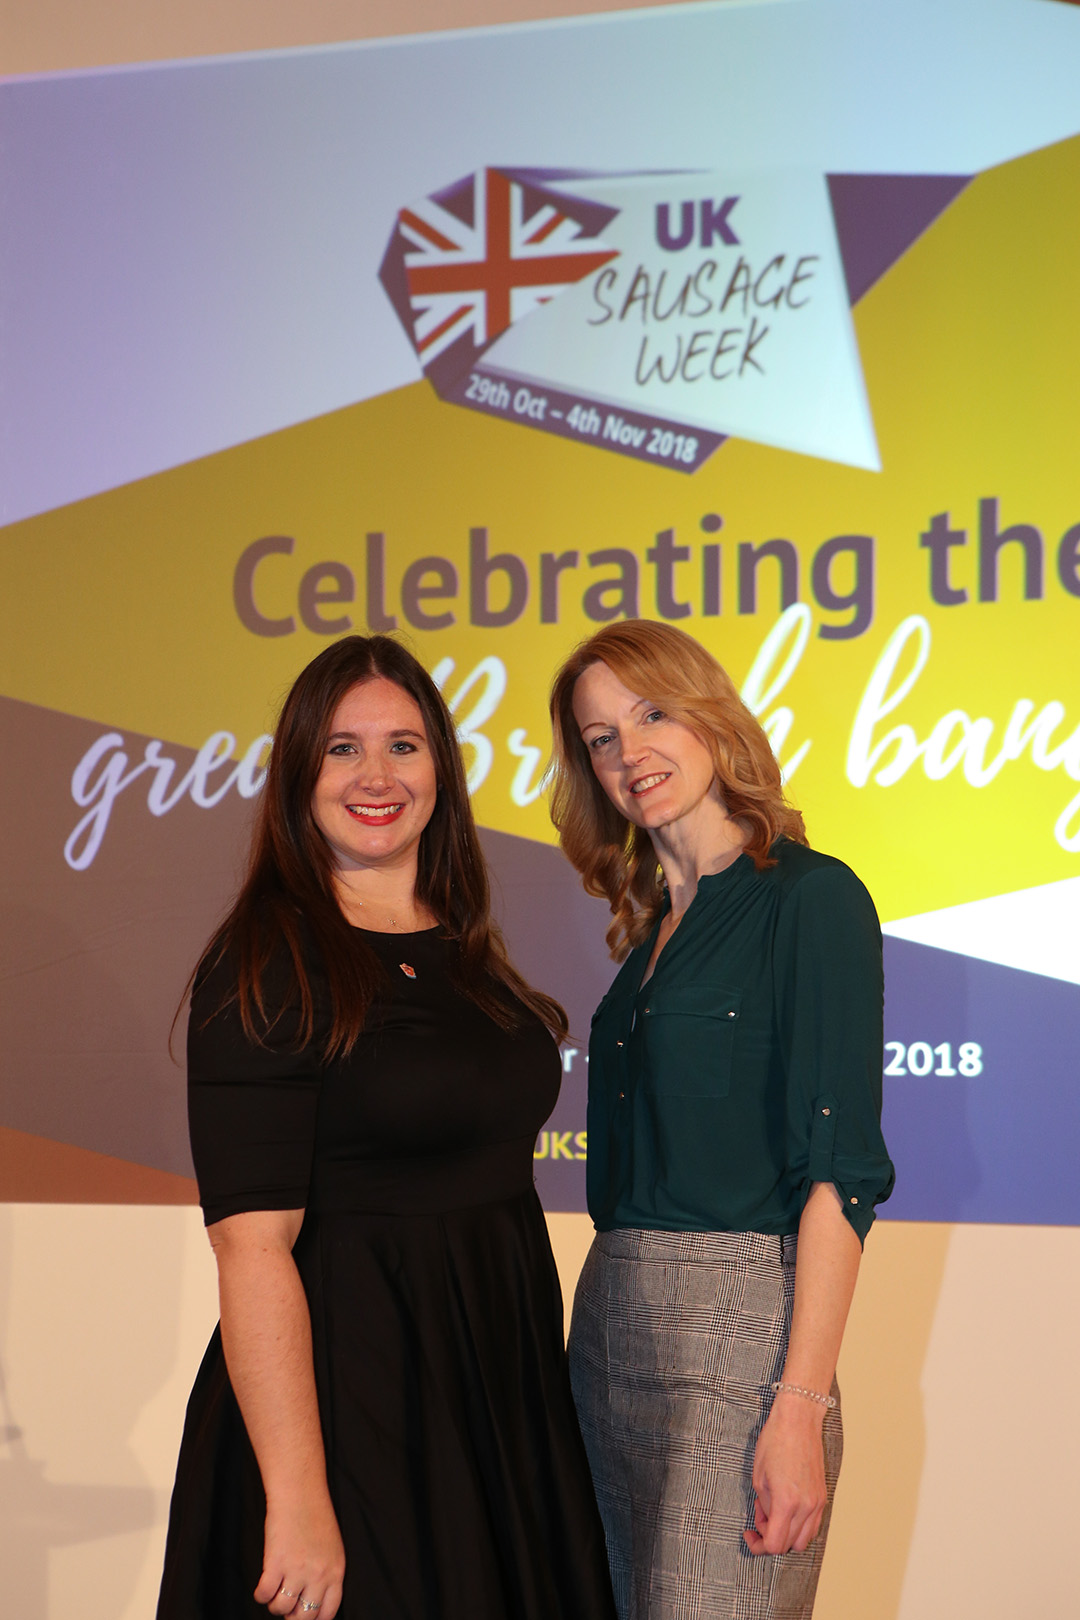 L-R: Meat Management editor Emily Ansell Elfer and UK Sausage Week awards organiser Emma Cash.